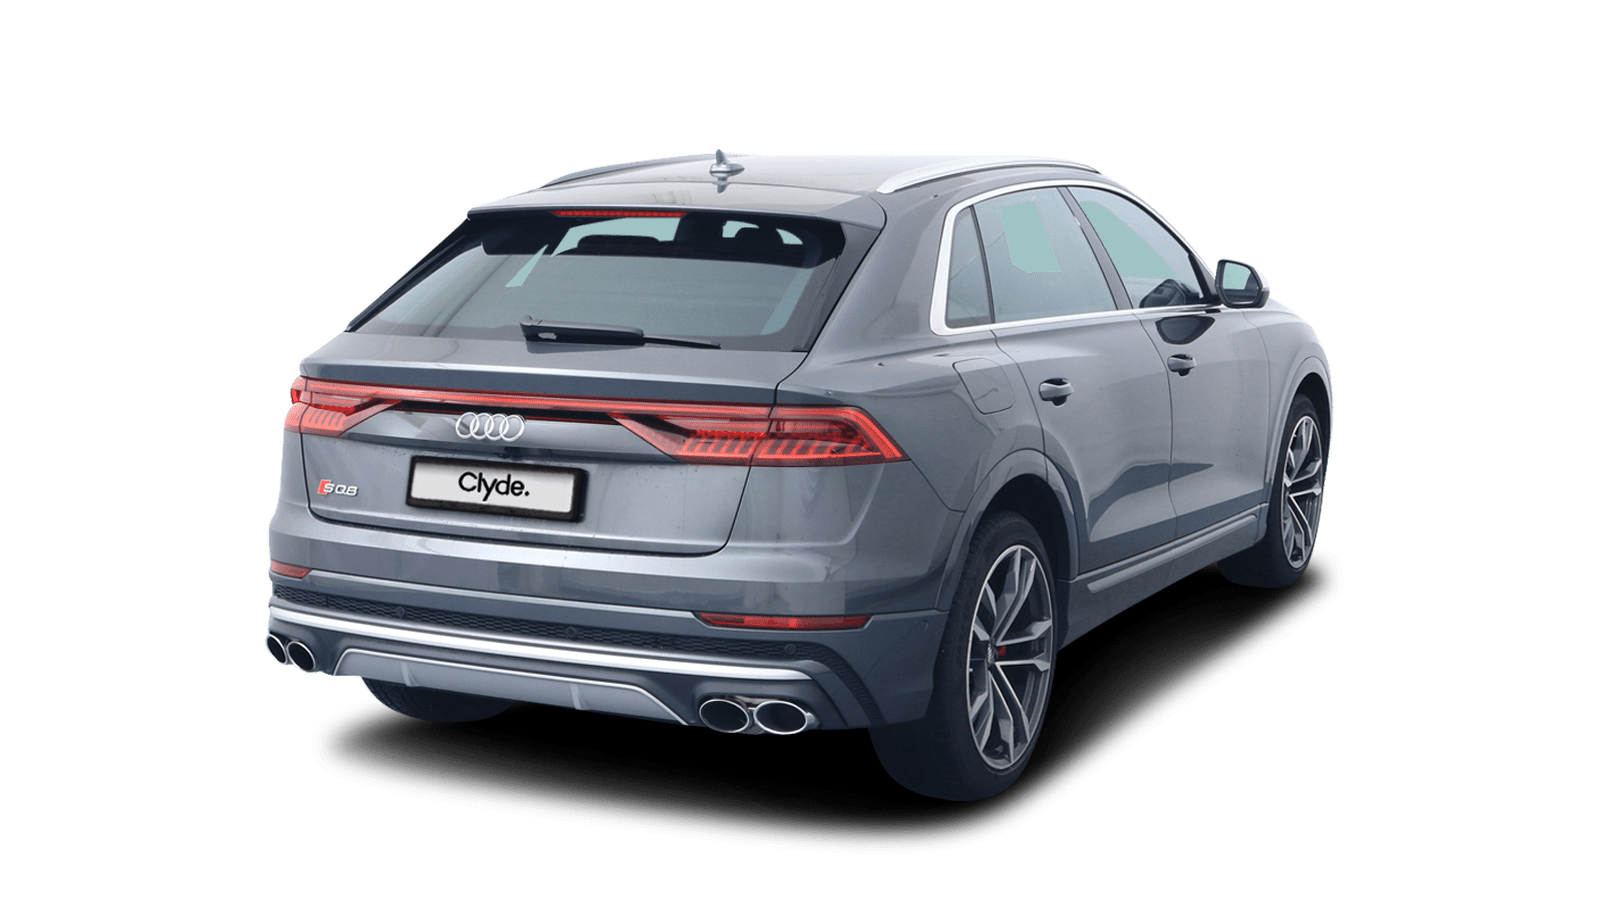 Audi SQ8 Grau front - Clyde Auto-Abo